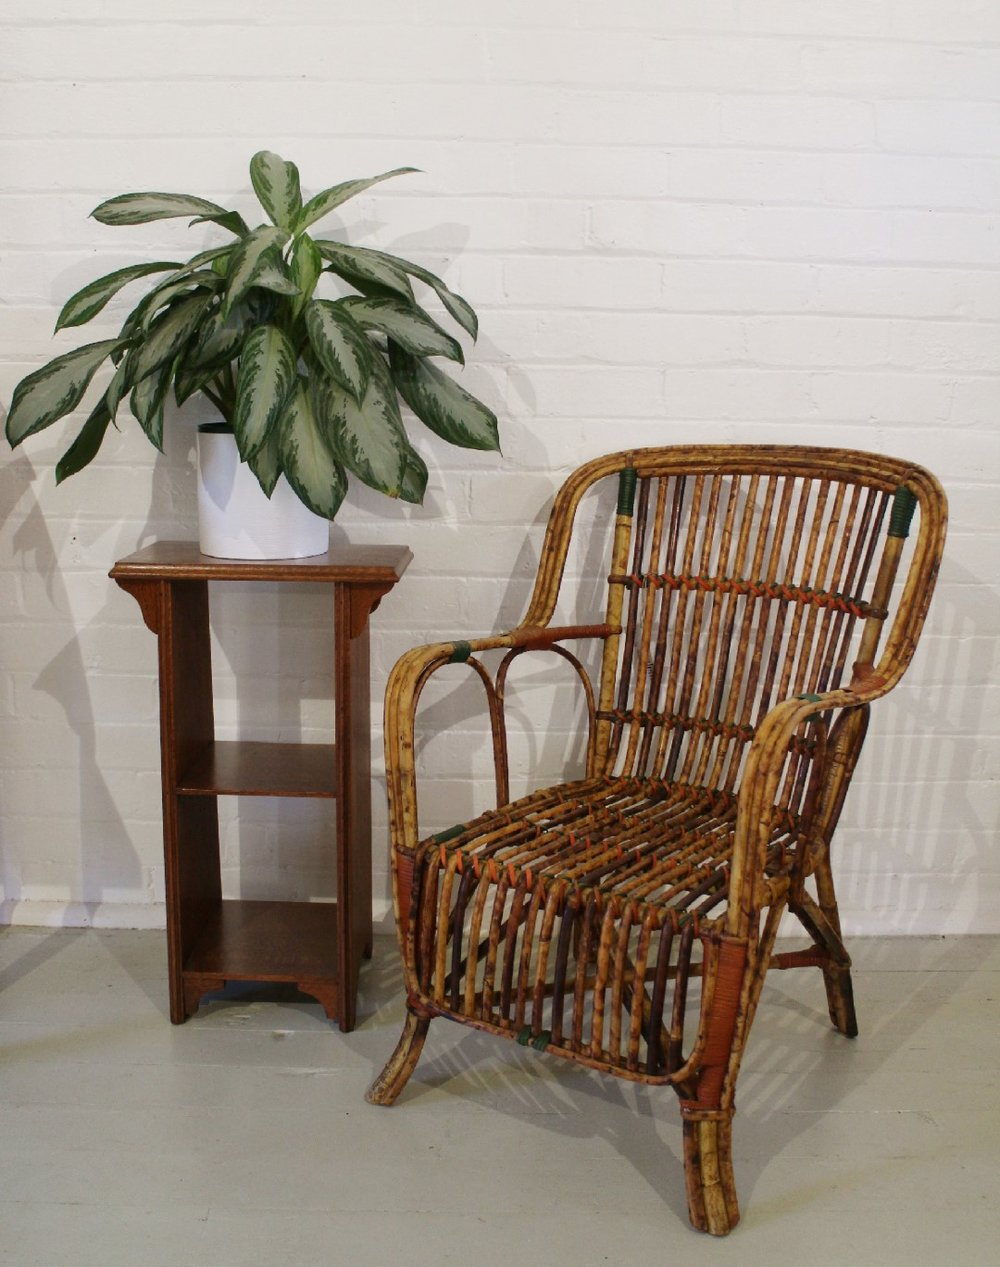 Vintage Cane Chair (Large).jpg